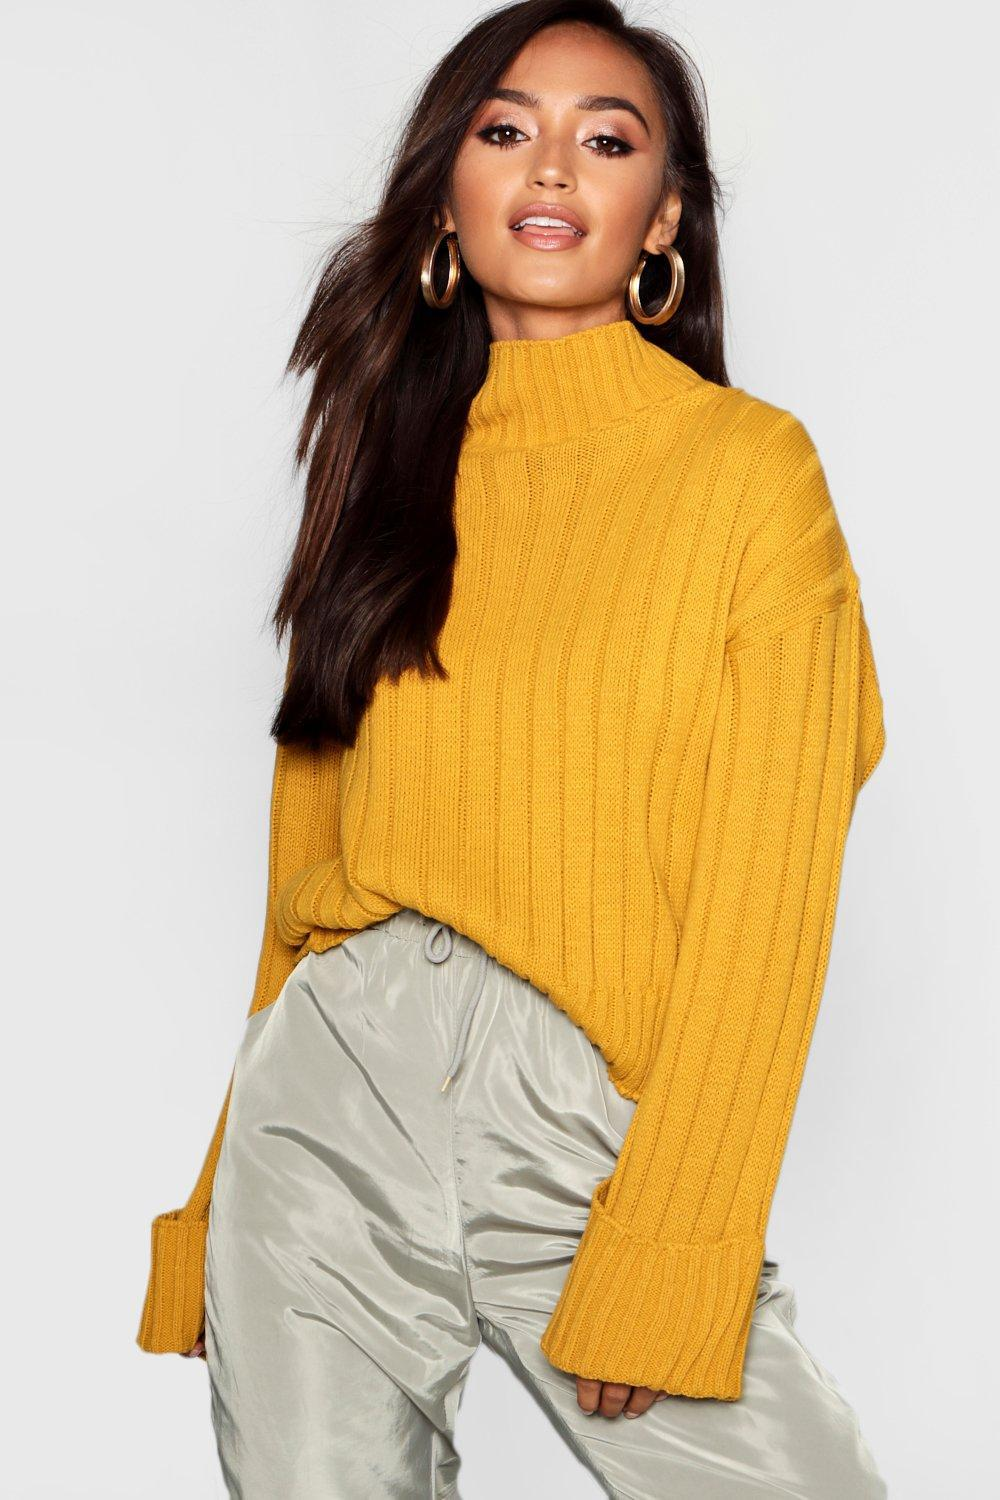 78beb99a4b0a4 Lyst - Boohoo Petite Rib Knit High Neck Jumper in Yellow